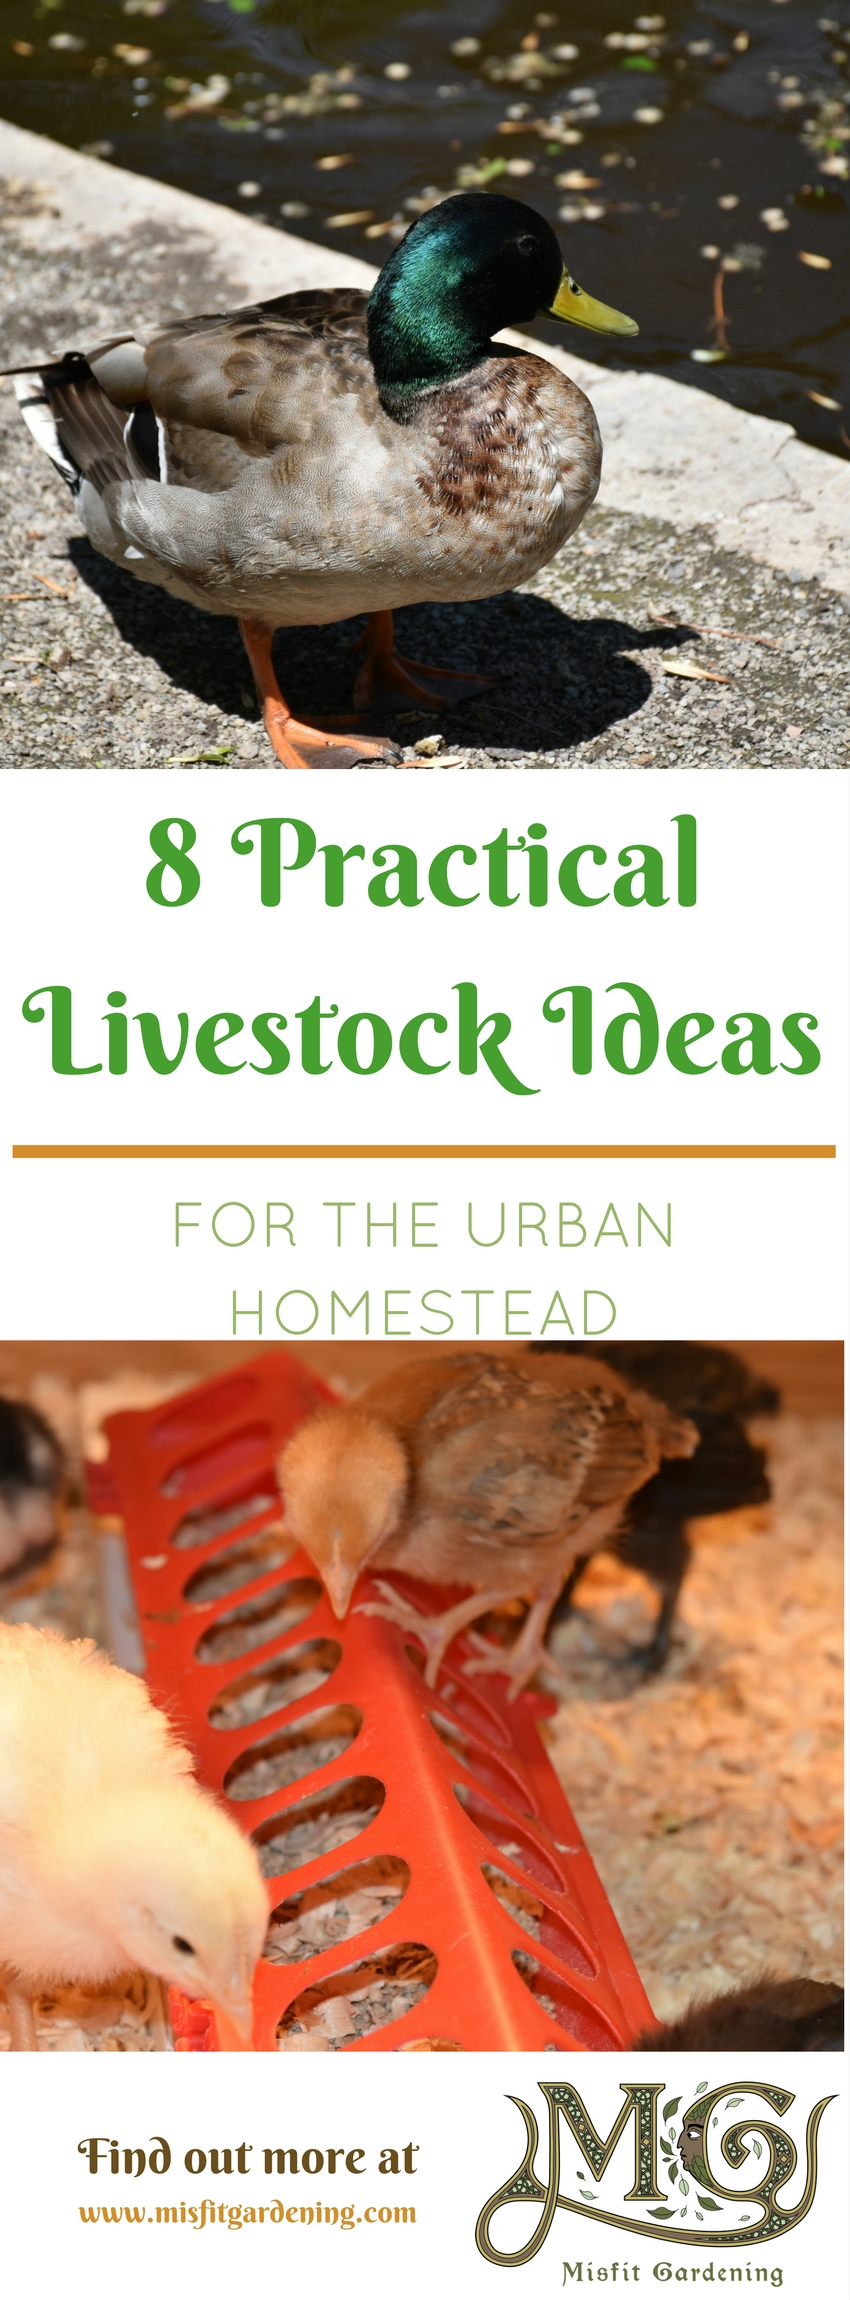 8 practical livestock options for urban homesteaders that you can raise in your backyard. Click to find out more or pin it for later